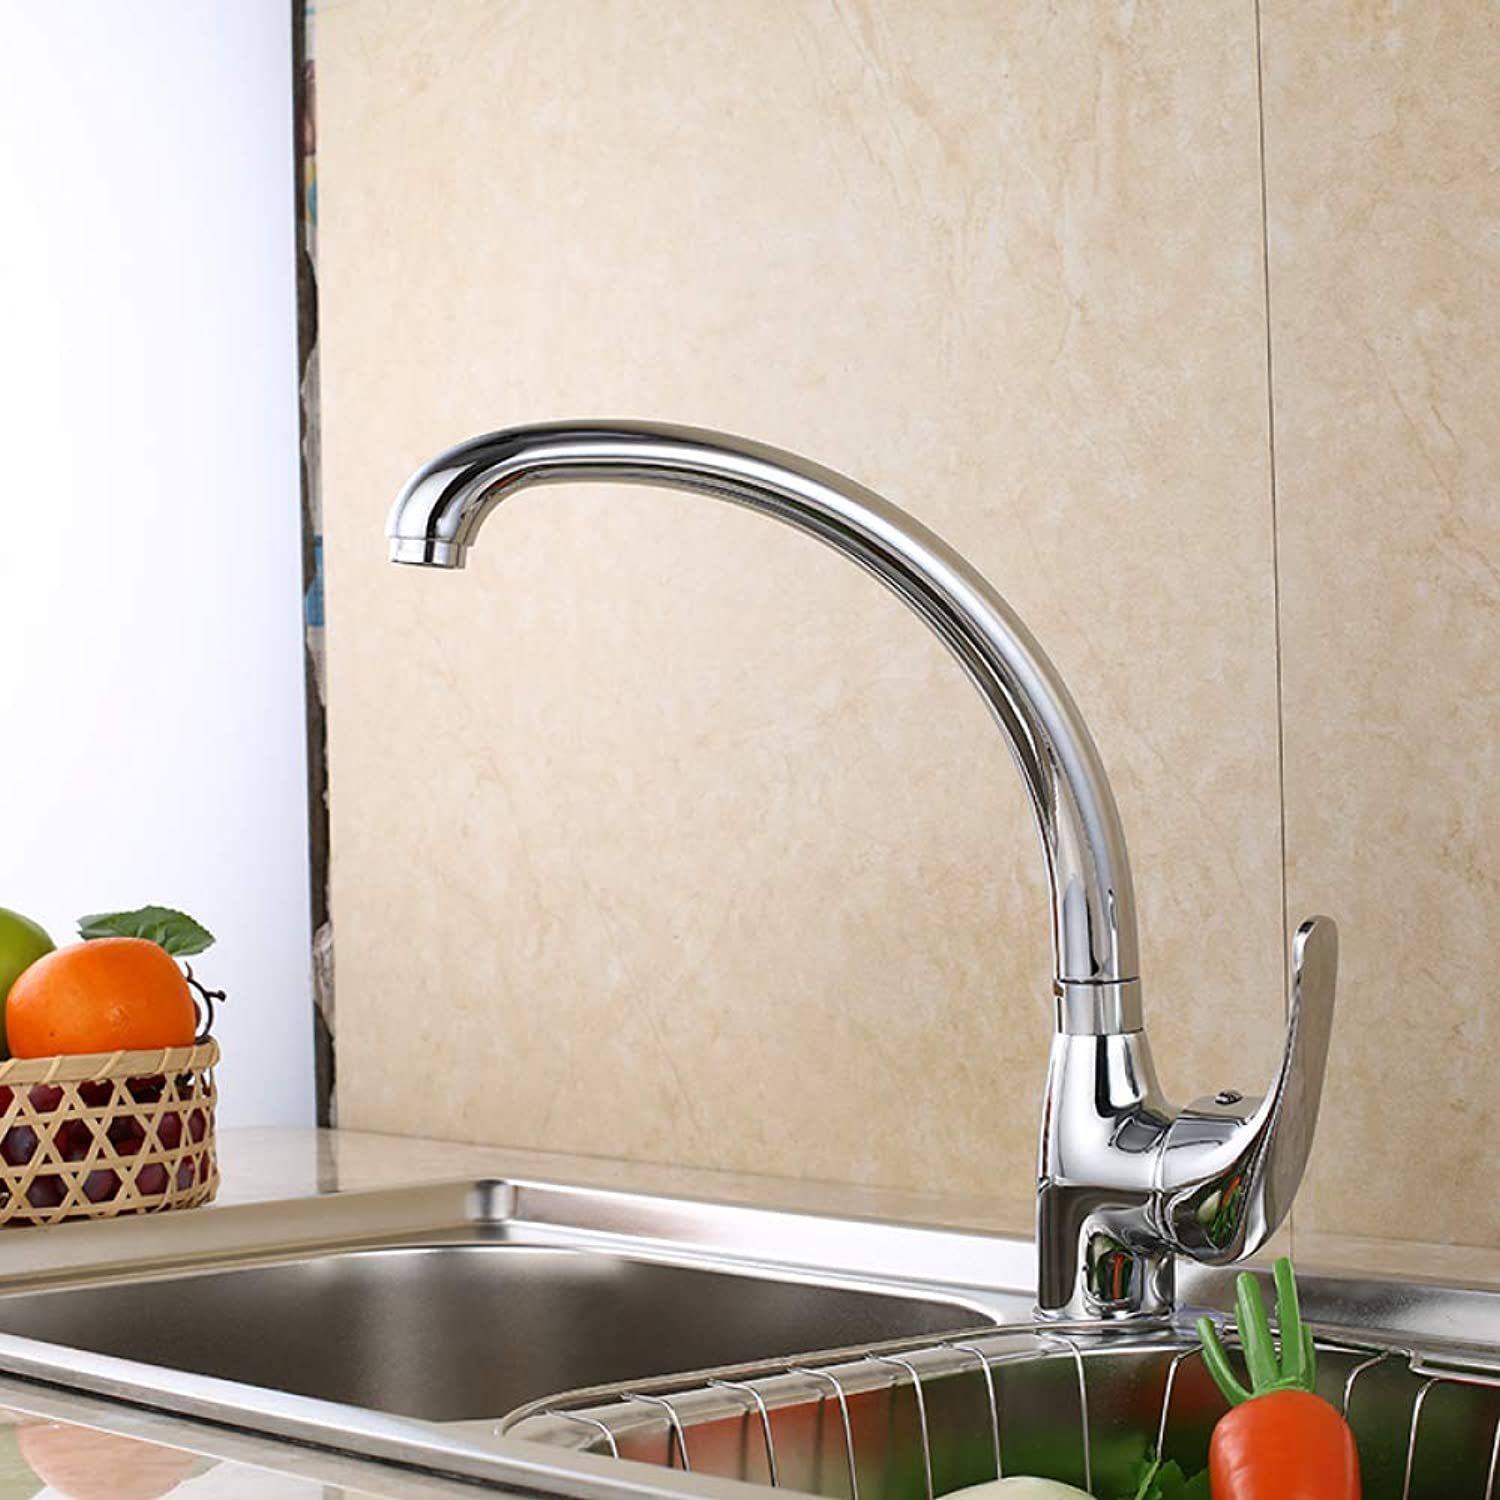 SLTYSCF Faucet Kitchen Faucet 360 Degree Swivel Solid Zinc Alloy Kitchen Mixer Cold and Hot Kitchen Tap Single Hole Water Tap